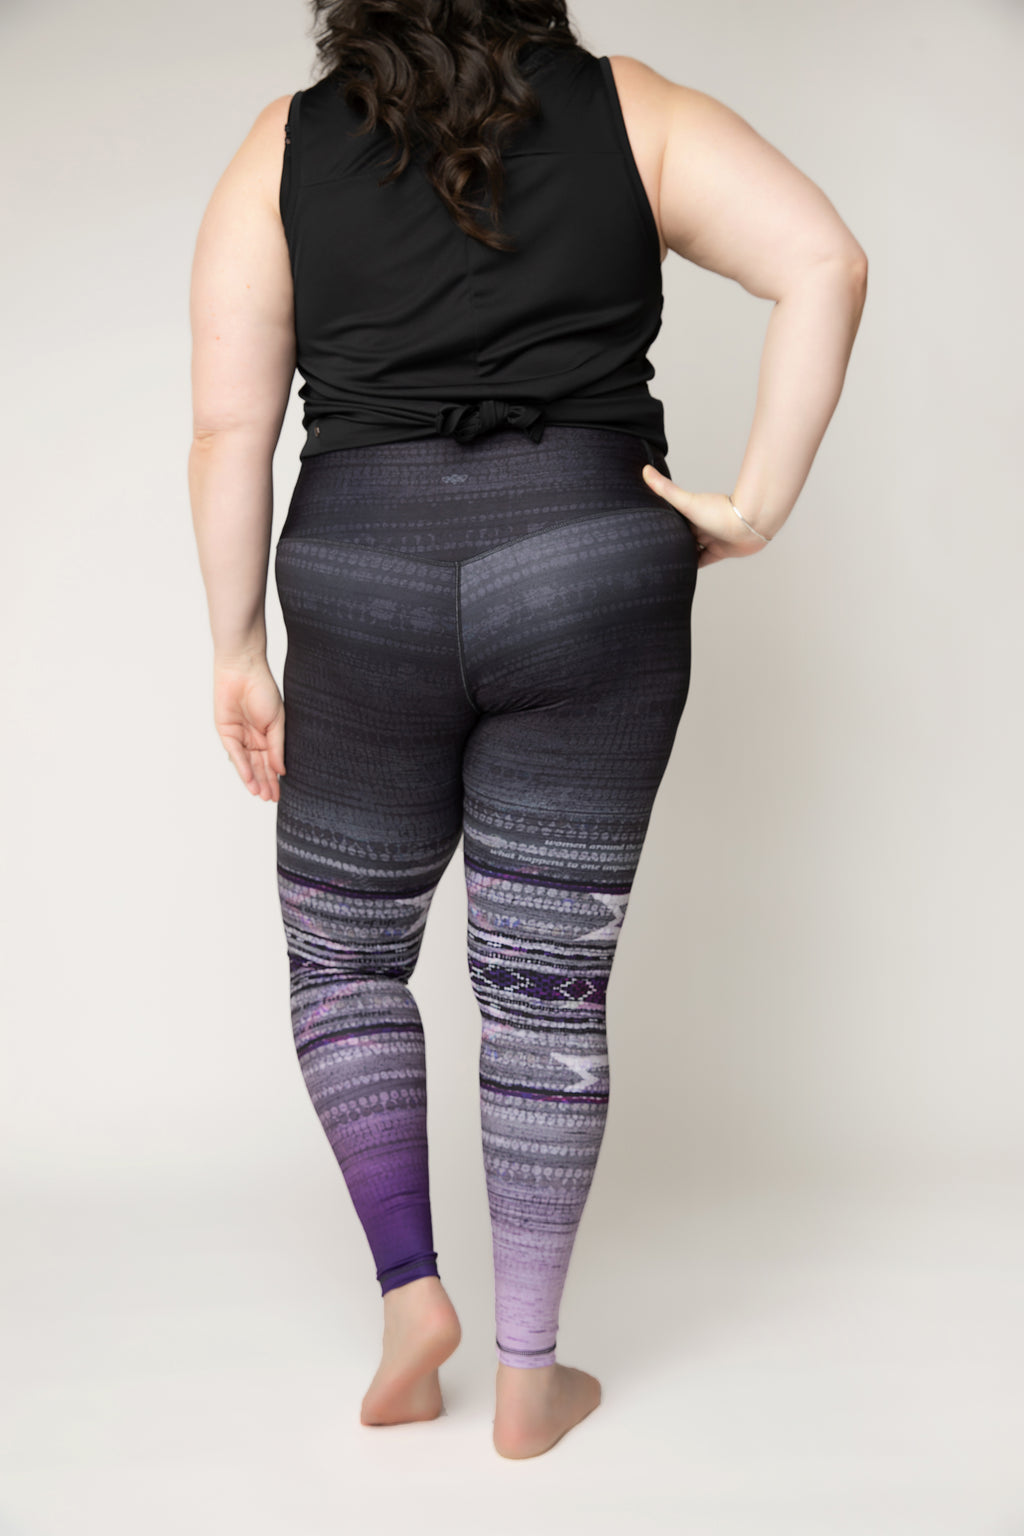 "Squat-proof tights in ""Woven Together"" print - ships mid June"